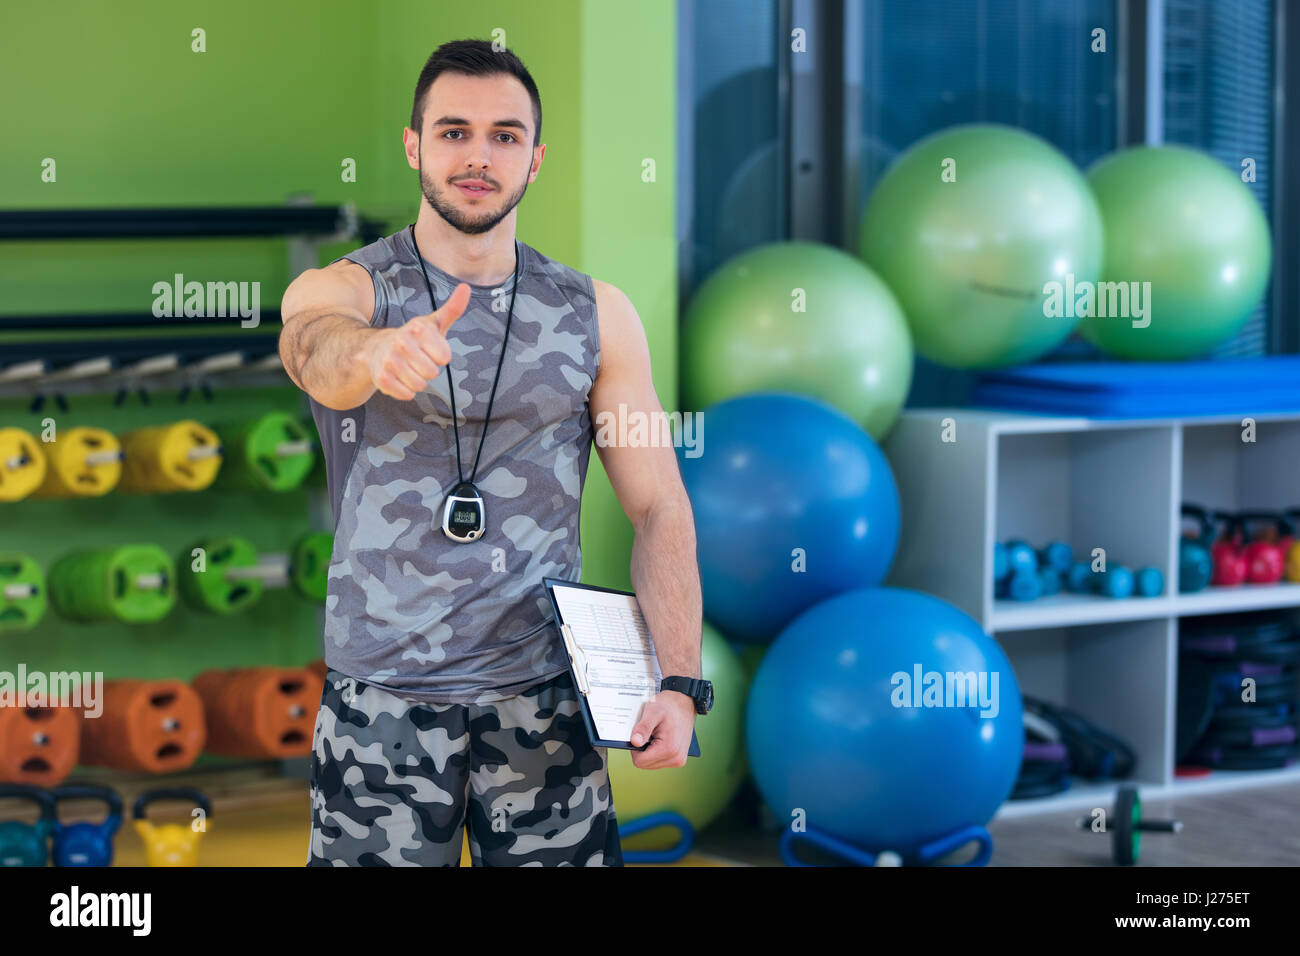 Portrait of a muscular trainer showing thumbs up. Stock Photo